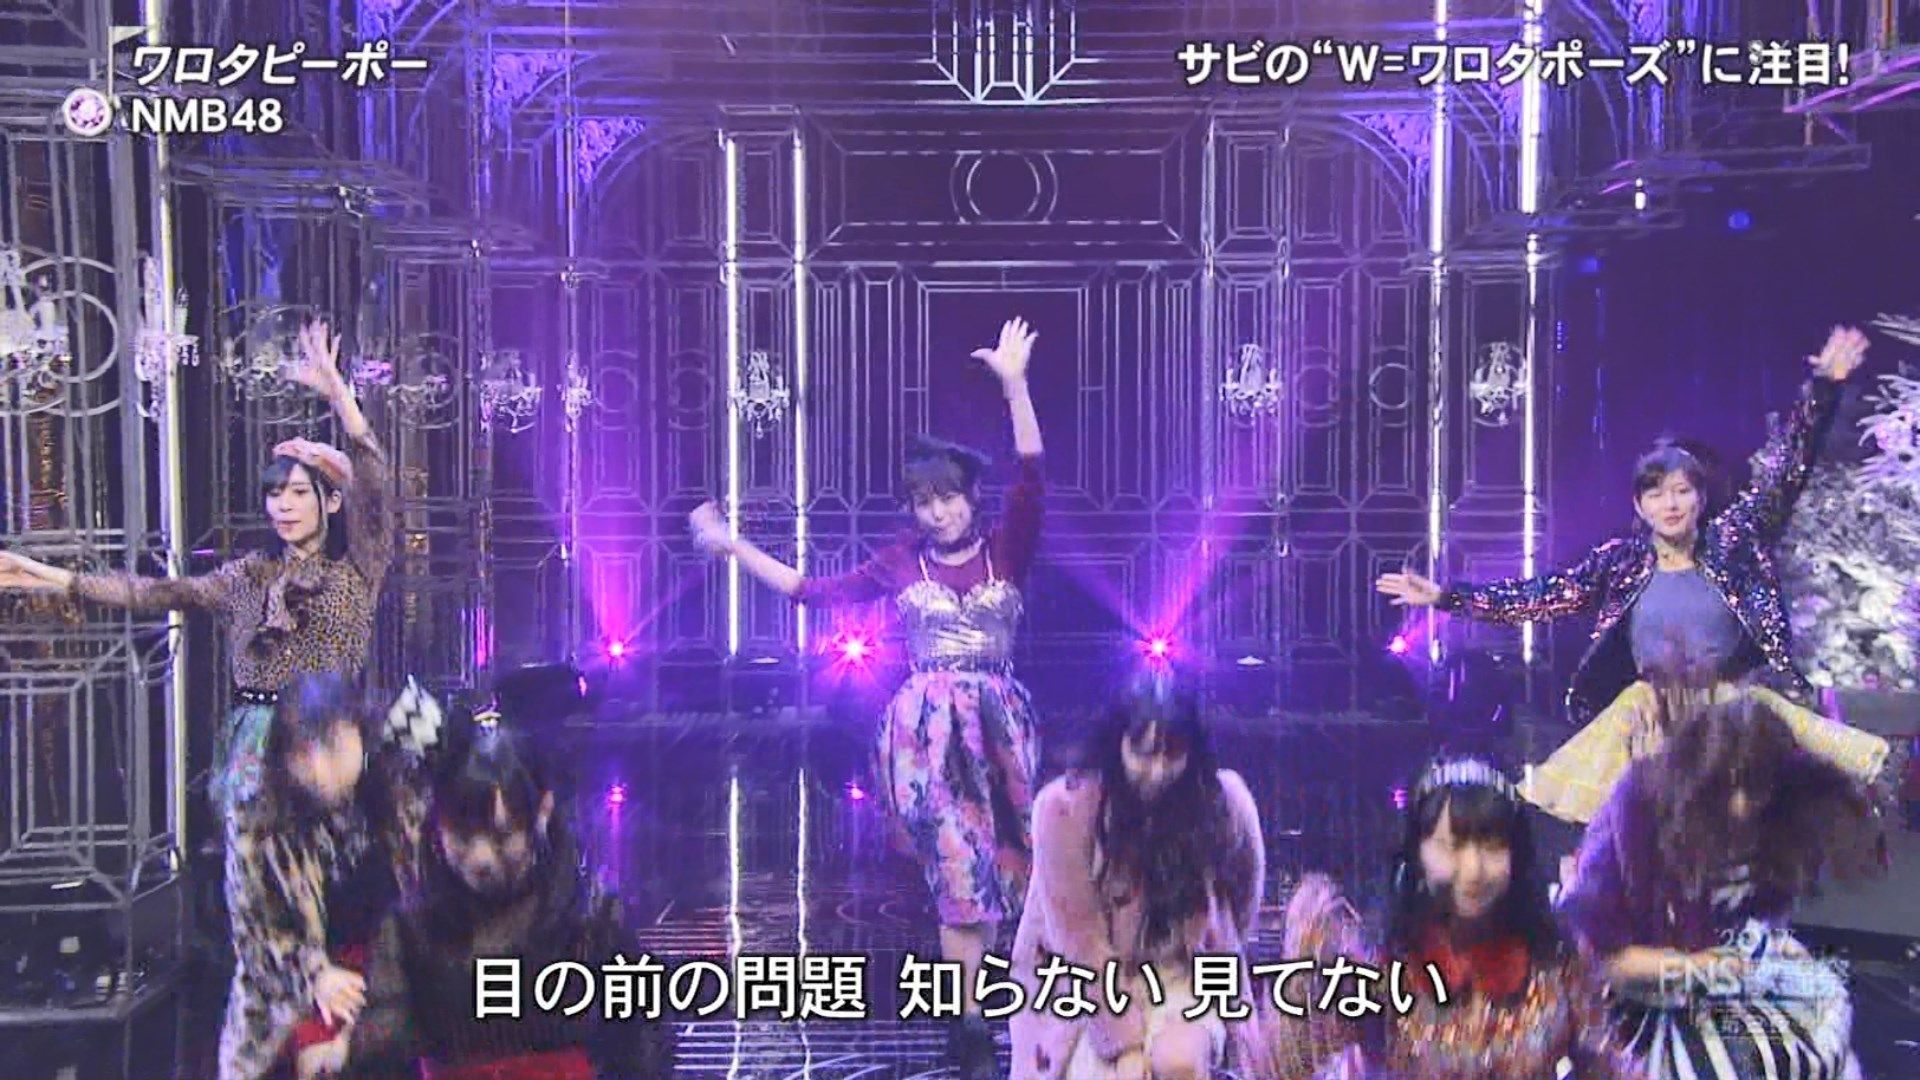 2017FNS歌謡祭第2夜・NMB48ワロタピーポーキャプ-047